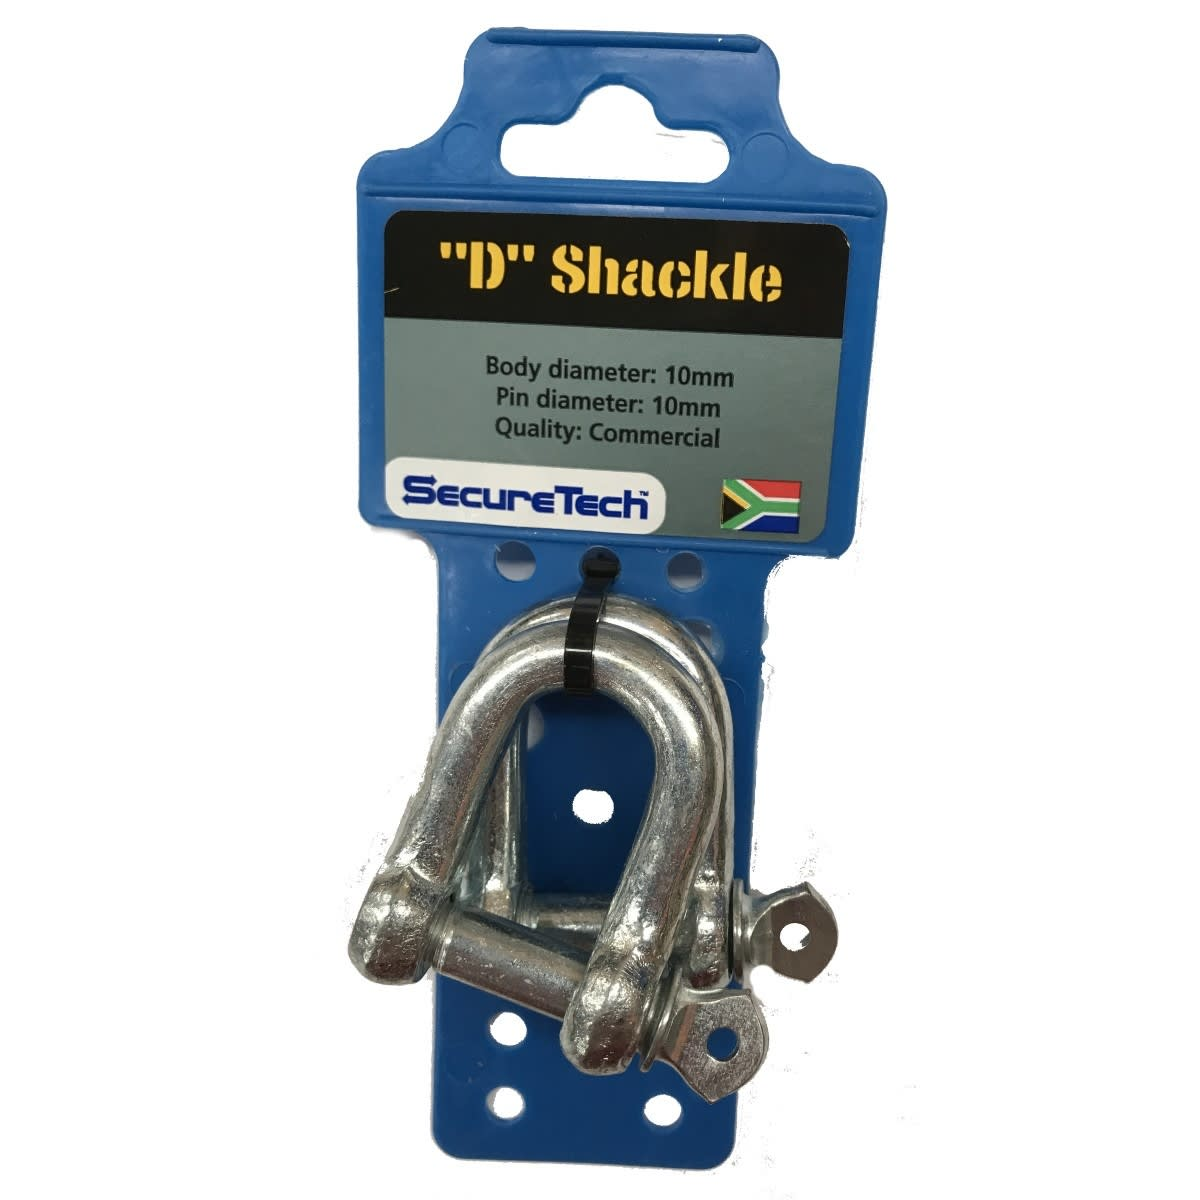 SecureTech D-Shackle 2Pack 10mm